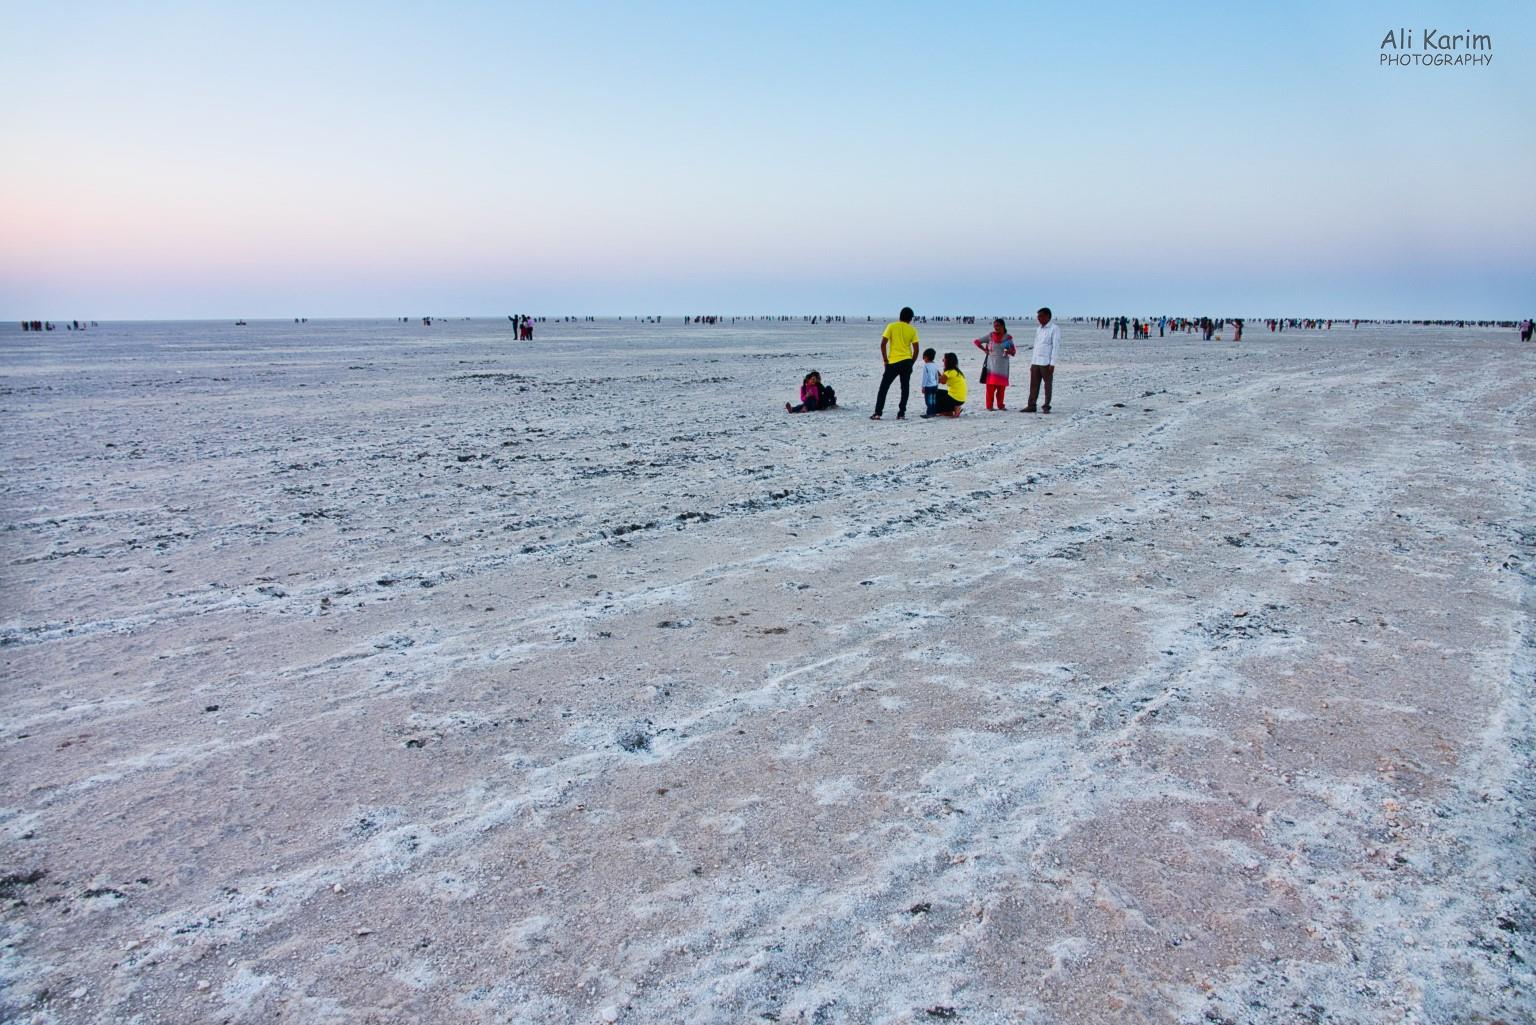 Bhuj, Kutch, Gujarat Vast salt flat, many tourists